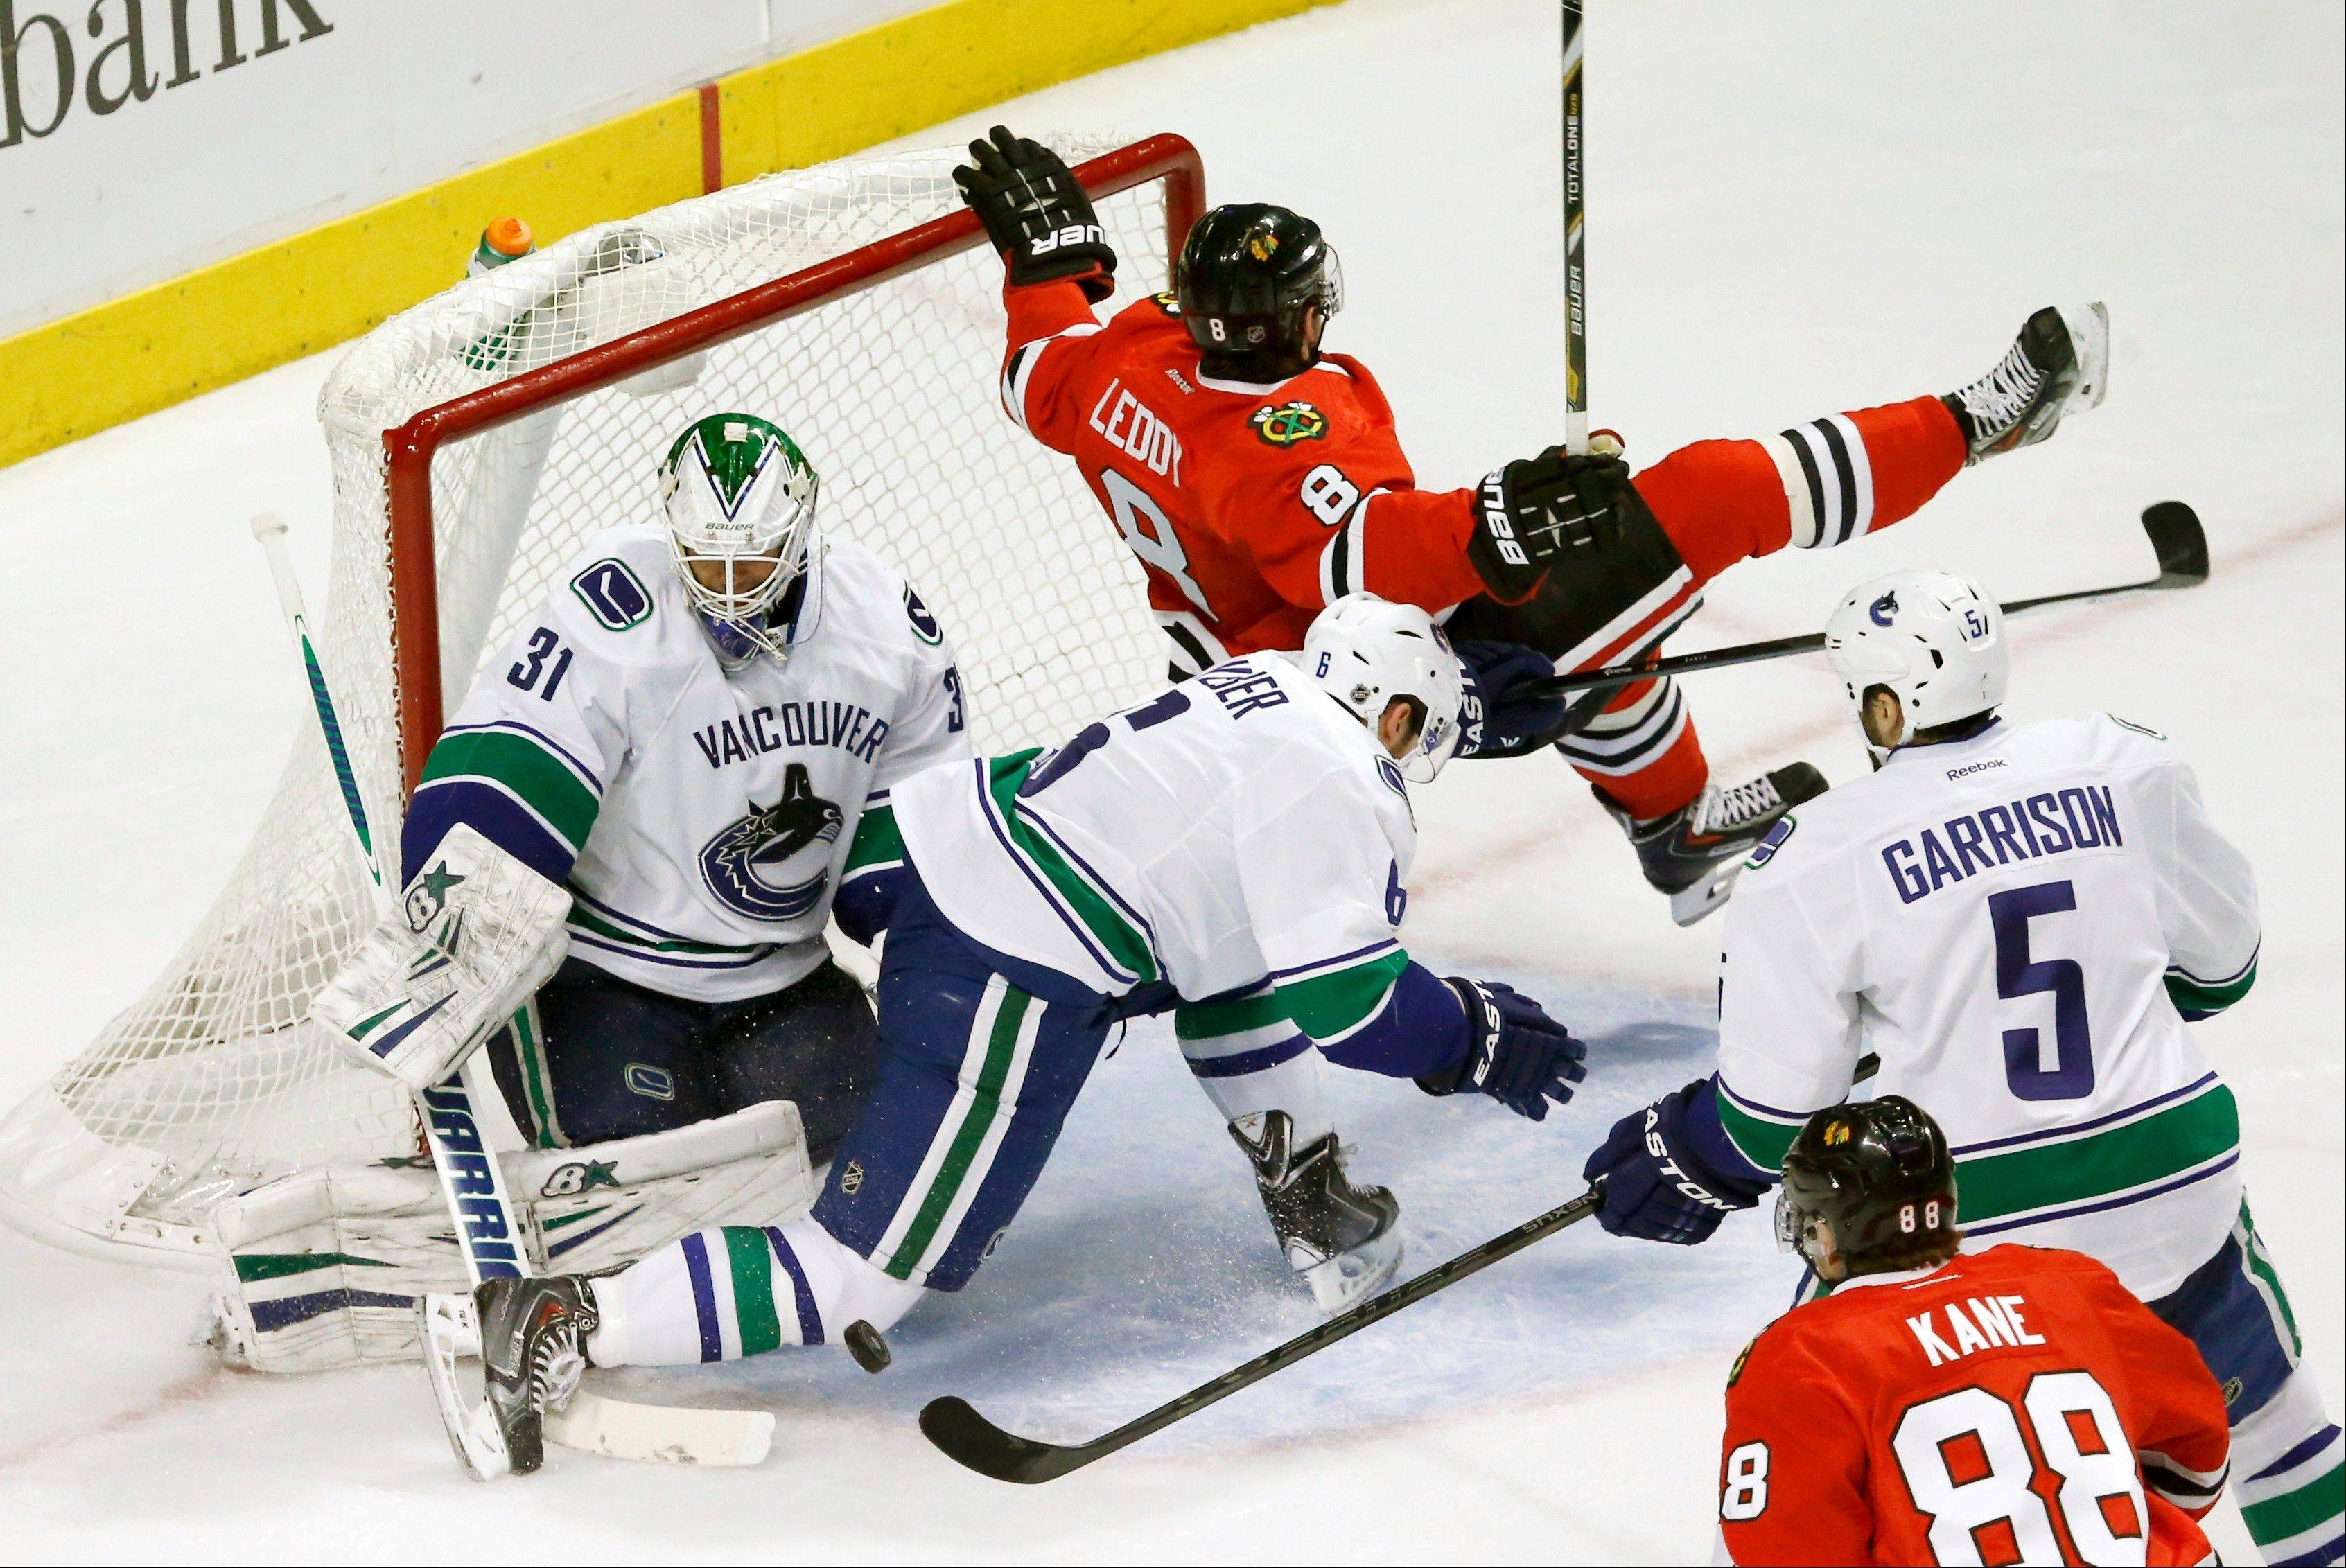 Despite chaos all around him, rookie Canucks goalie Eddie Lack makes a save against the Blackhawks on Friday at the United Center.